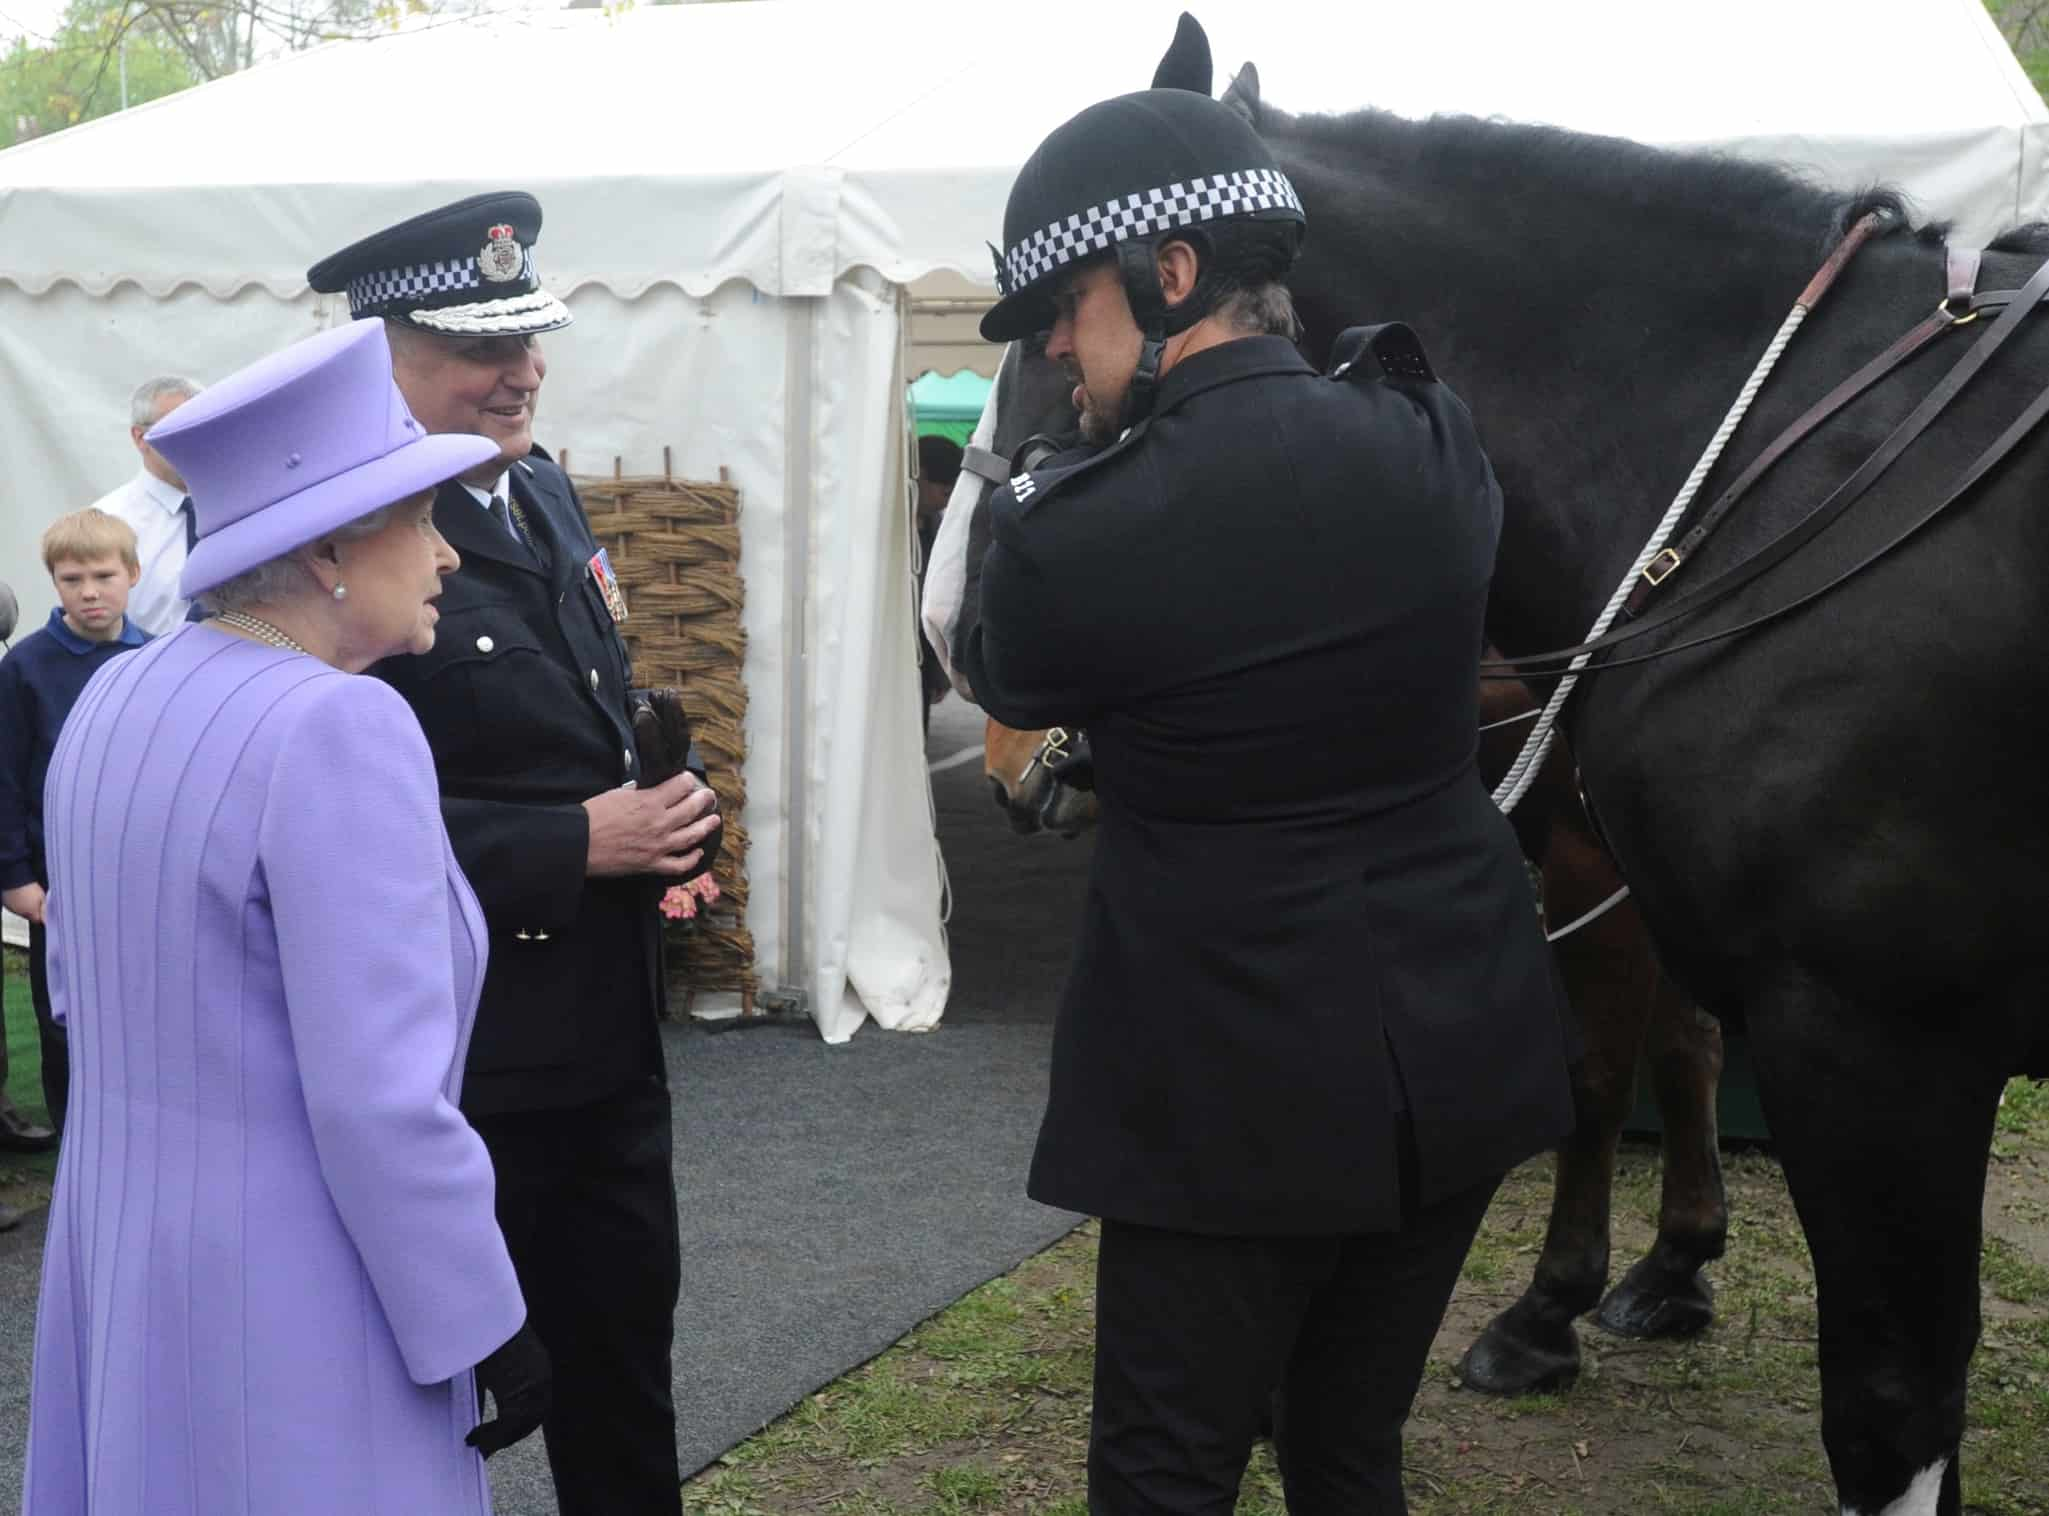 Visit to Somerset by Her Majesty The Queen